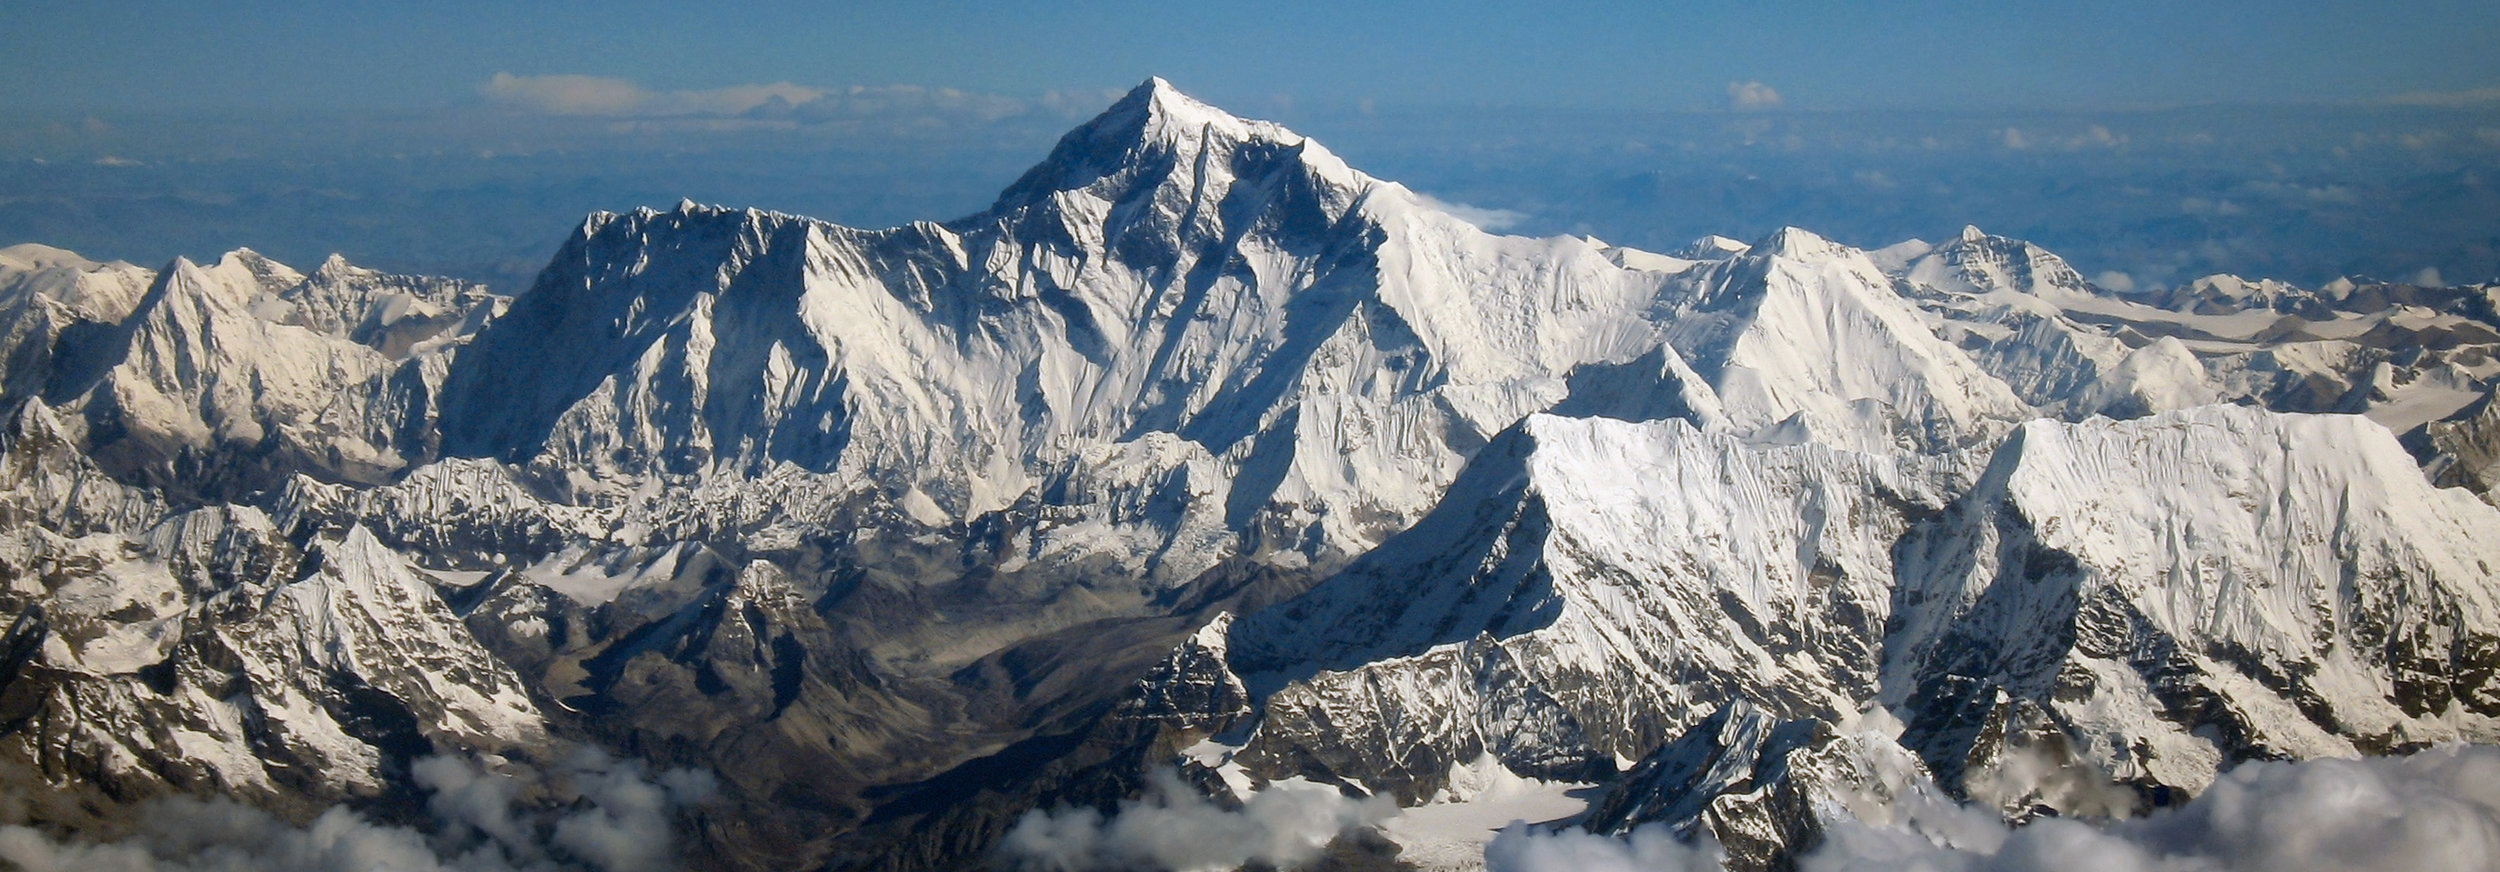 Mount_Everest_as_seen_from_Drukair2_PLW_edit.jpg